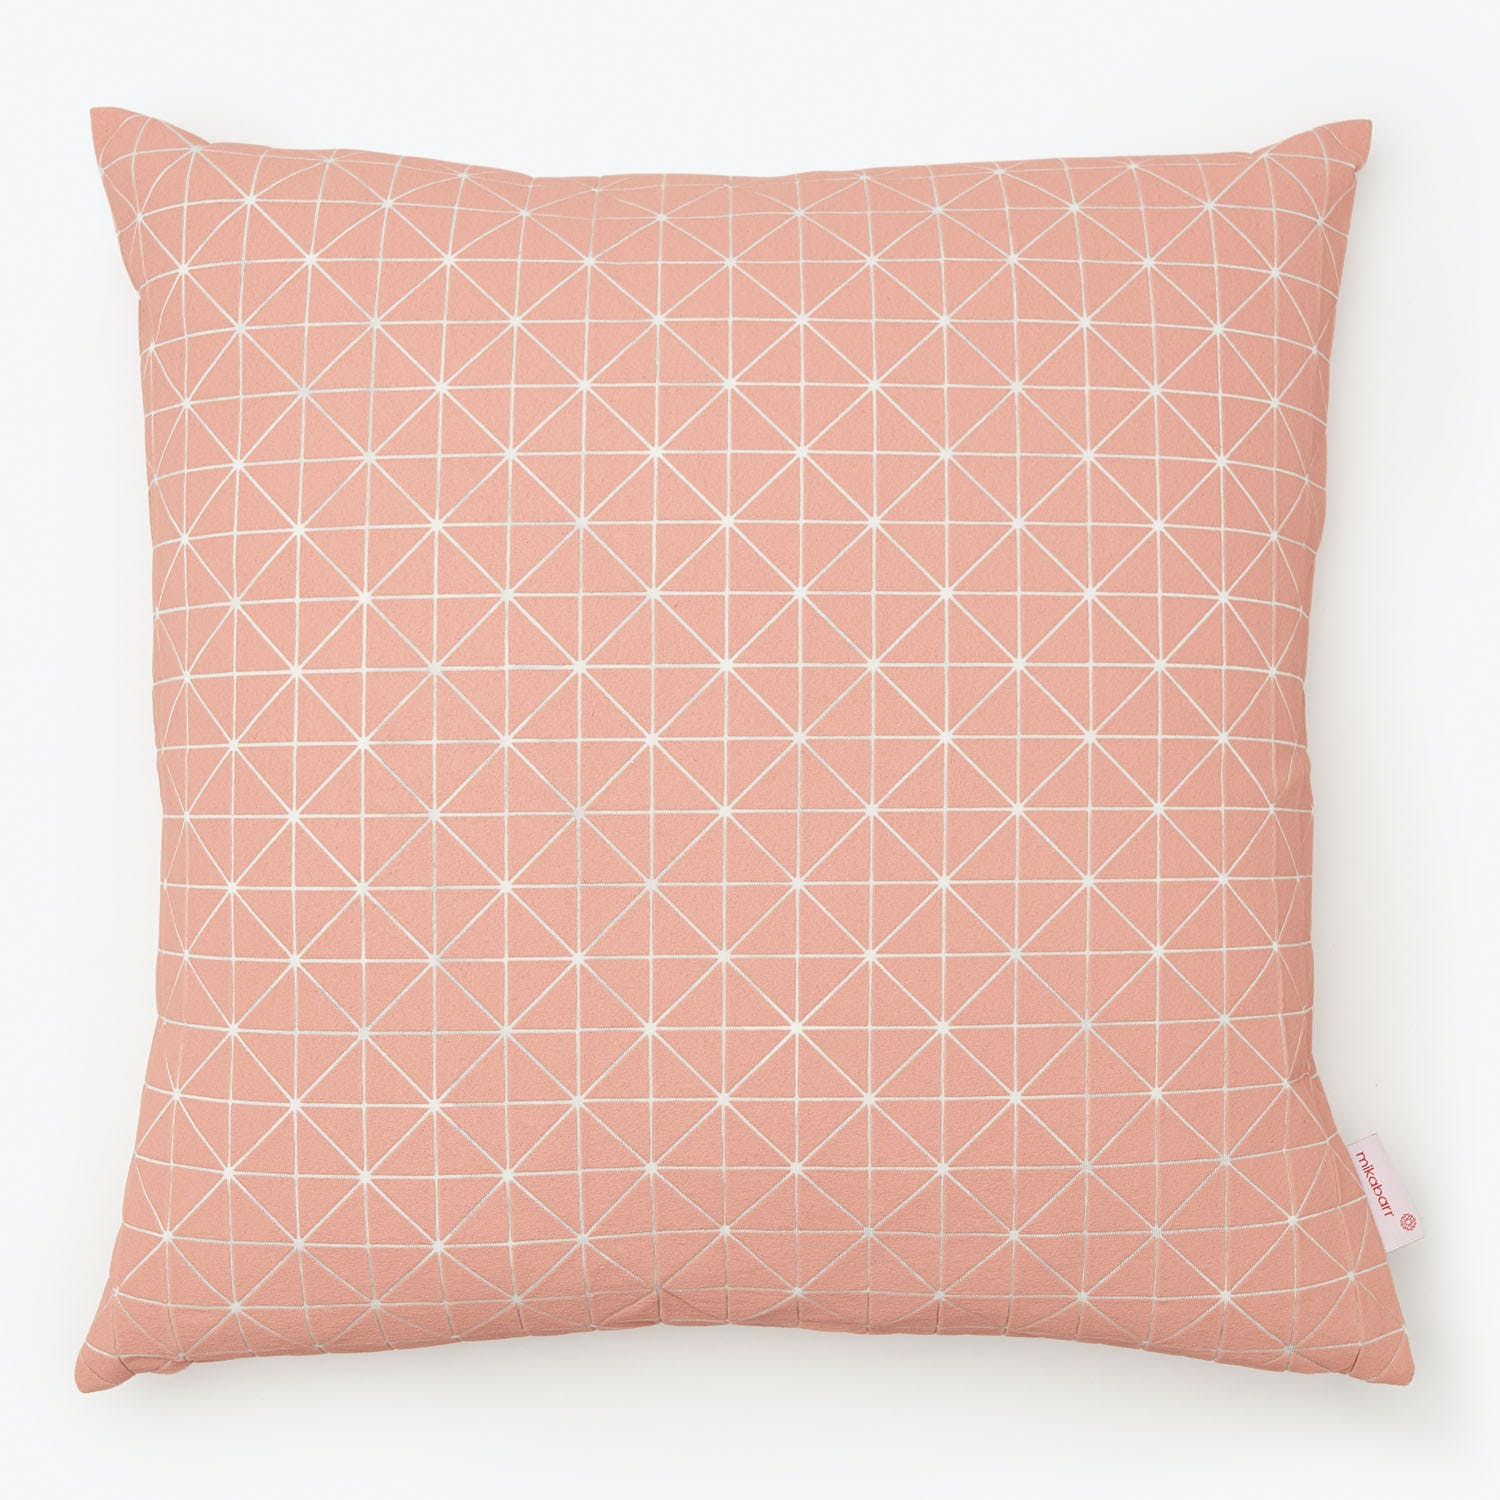 Mikabarr Geo Origami Pillow Pale Pink